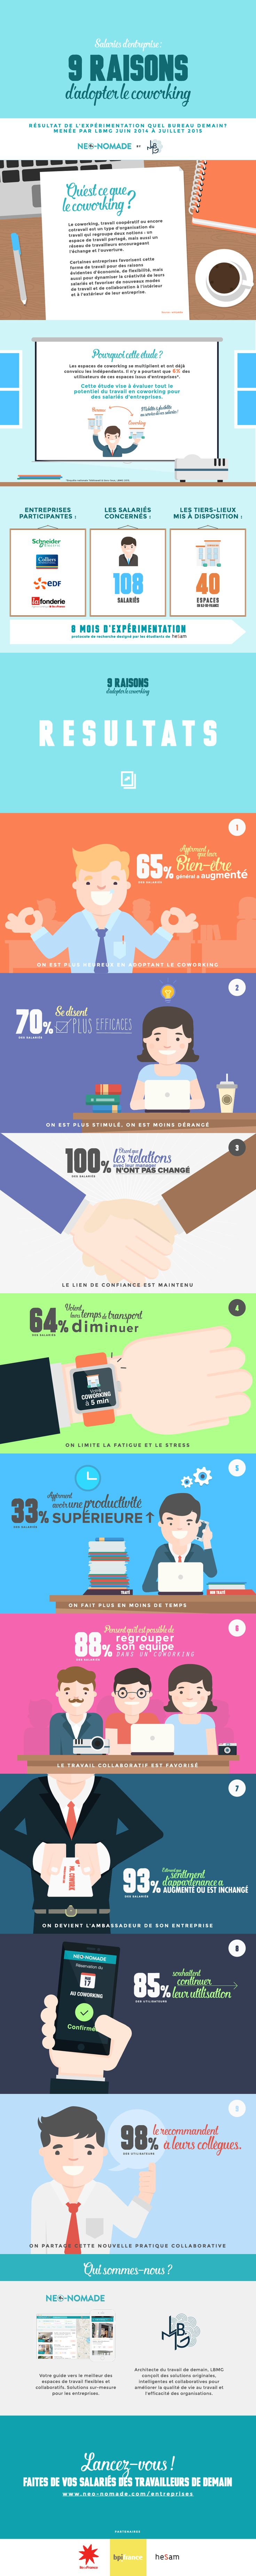 """Infographie """"Neuf raisons d'adopter le coworking"""""""